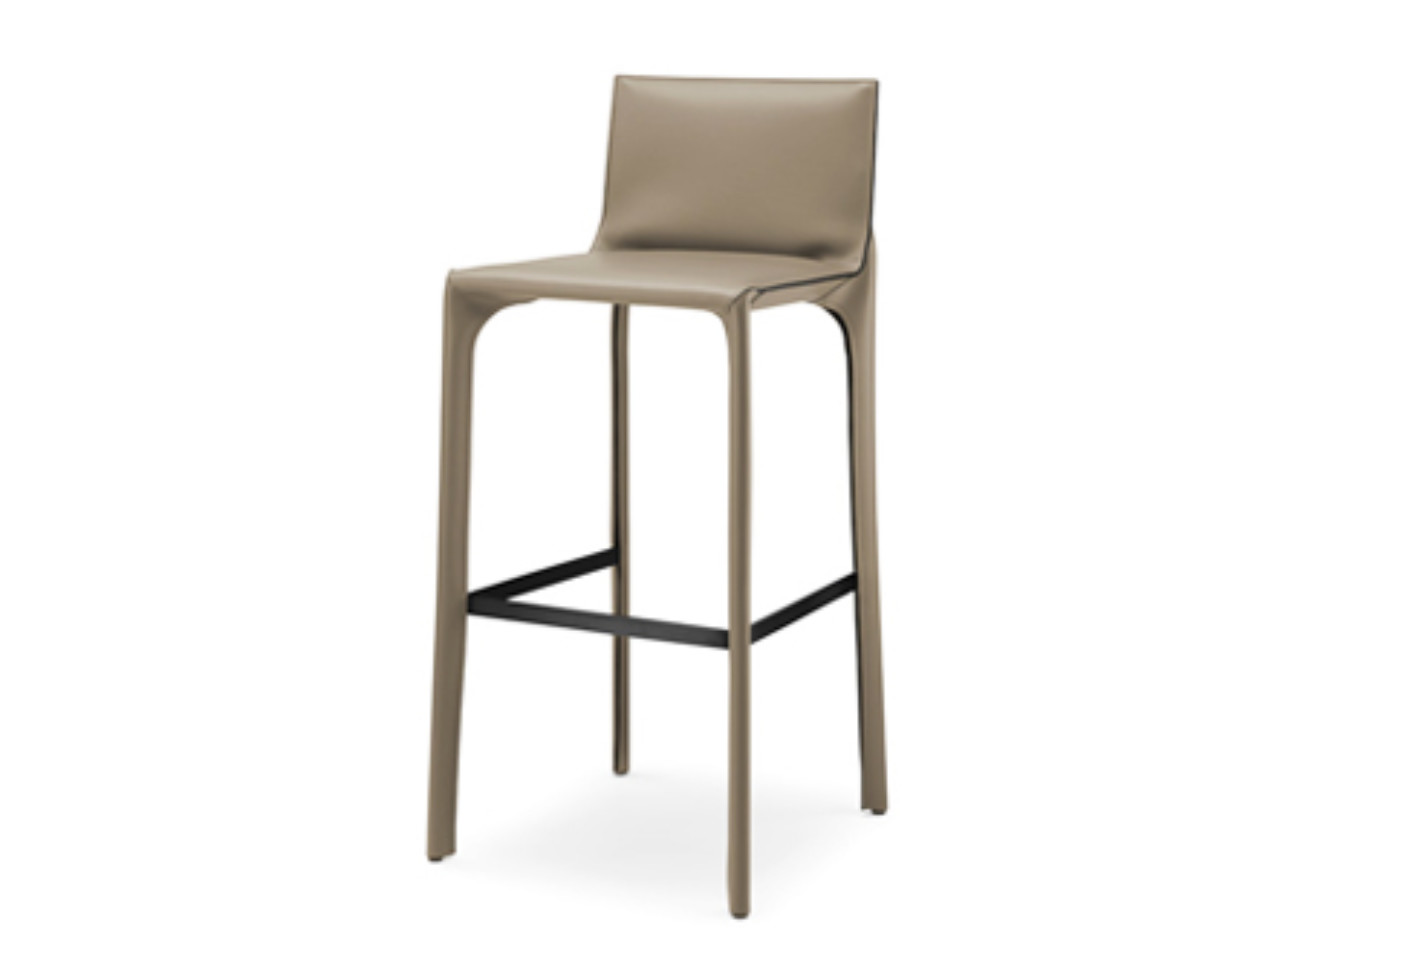 Saddle chair bar stool with backrest by walter knoll for Stool chair